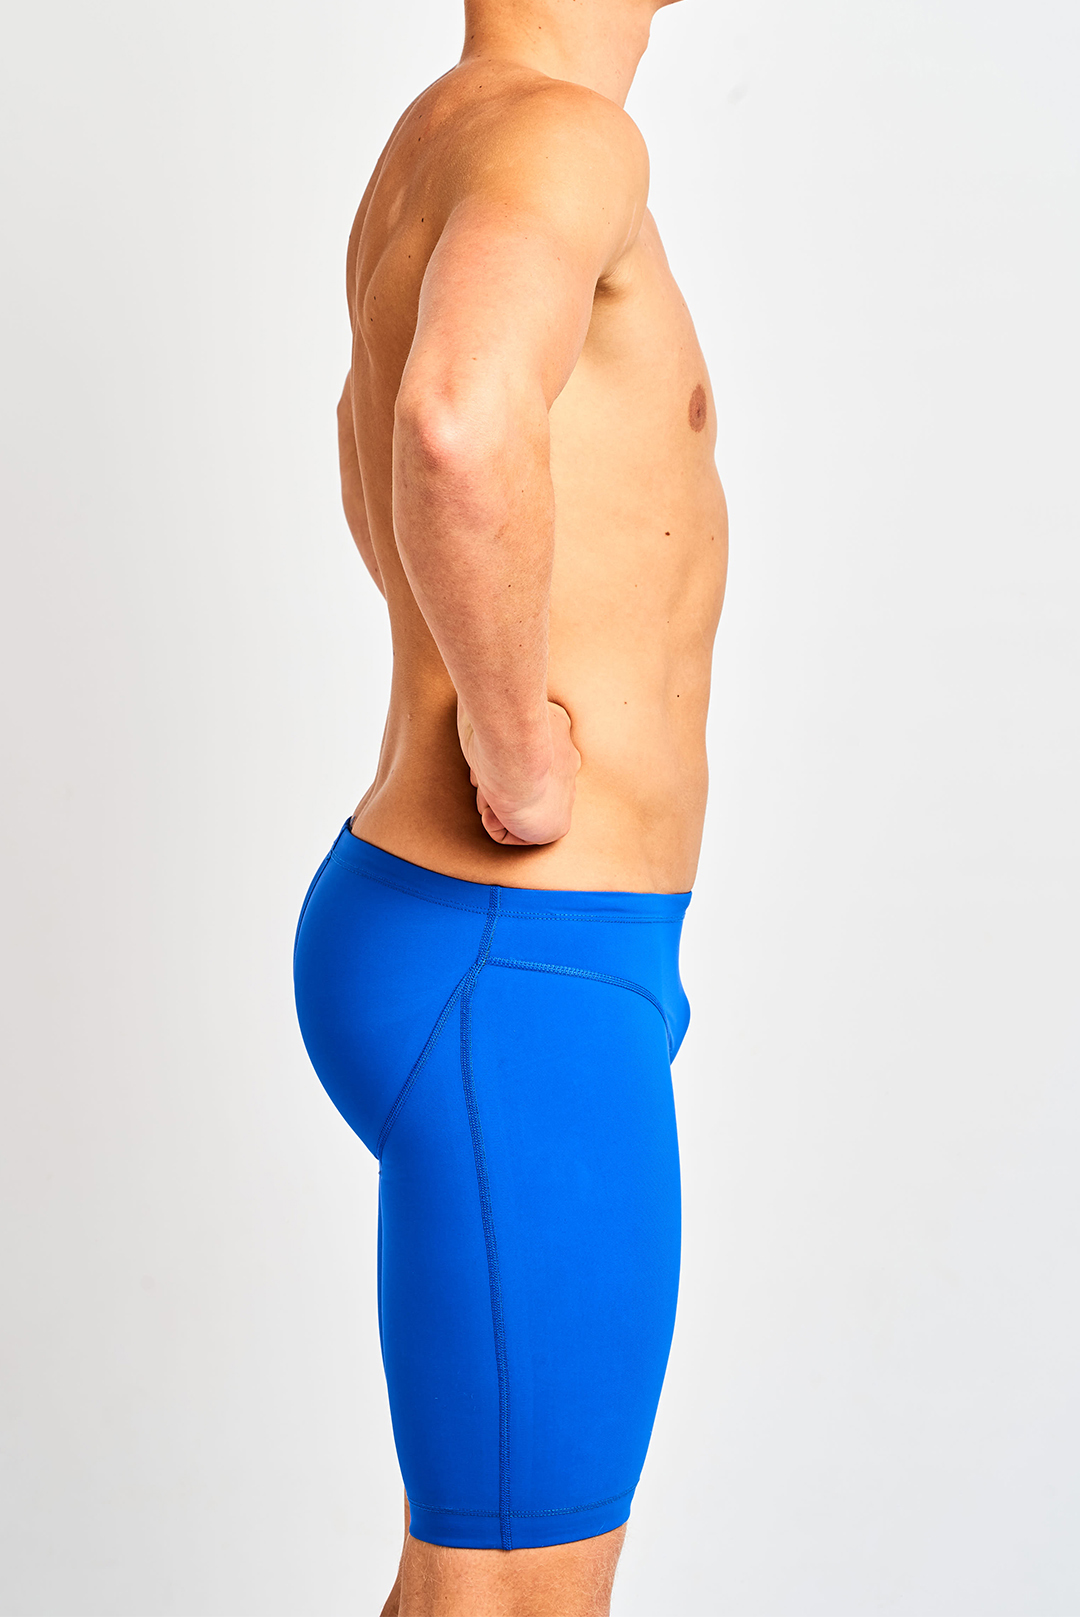 Shredskin Pro Male - Solid Royal